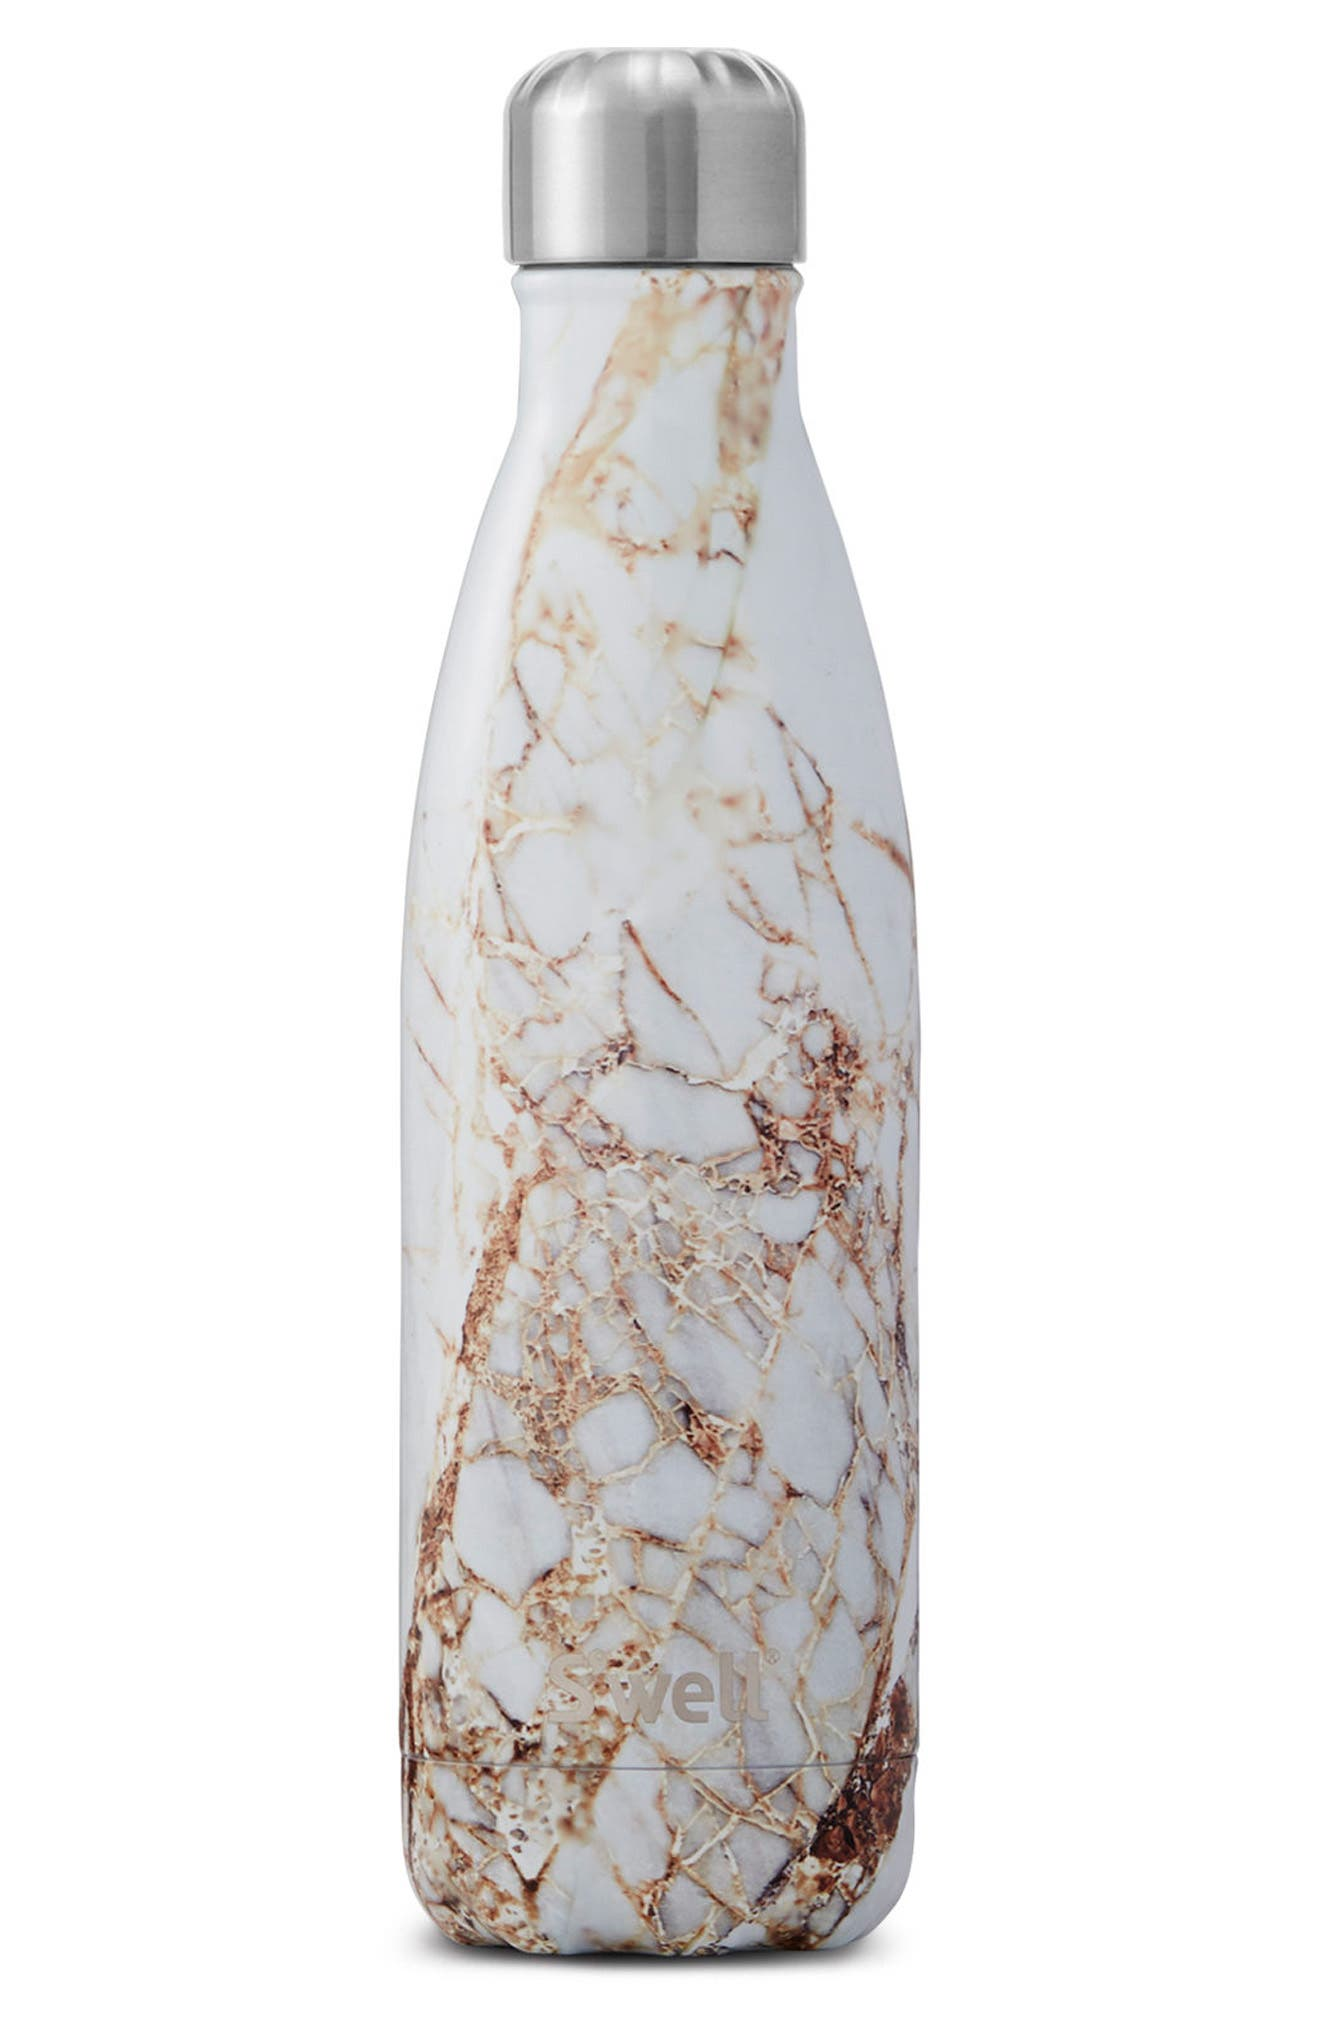 Alternate Image 1 Selected - S'well Elements Collection - Calacatta Gold Insulated Stainless Steel Water Bottle